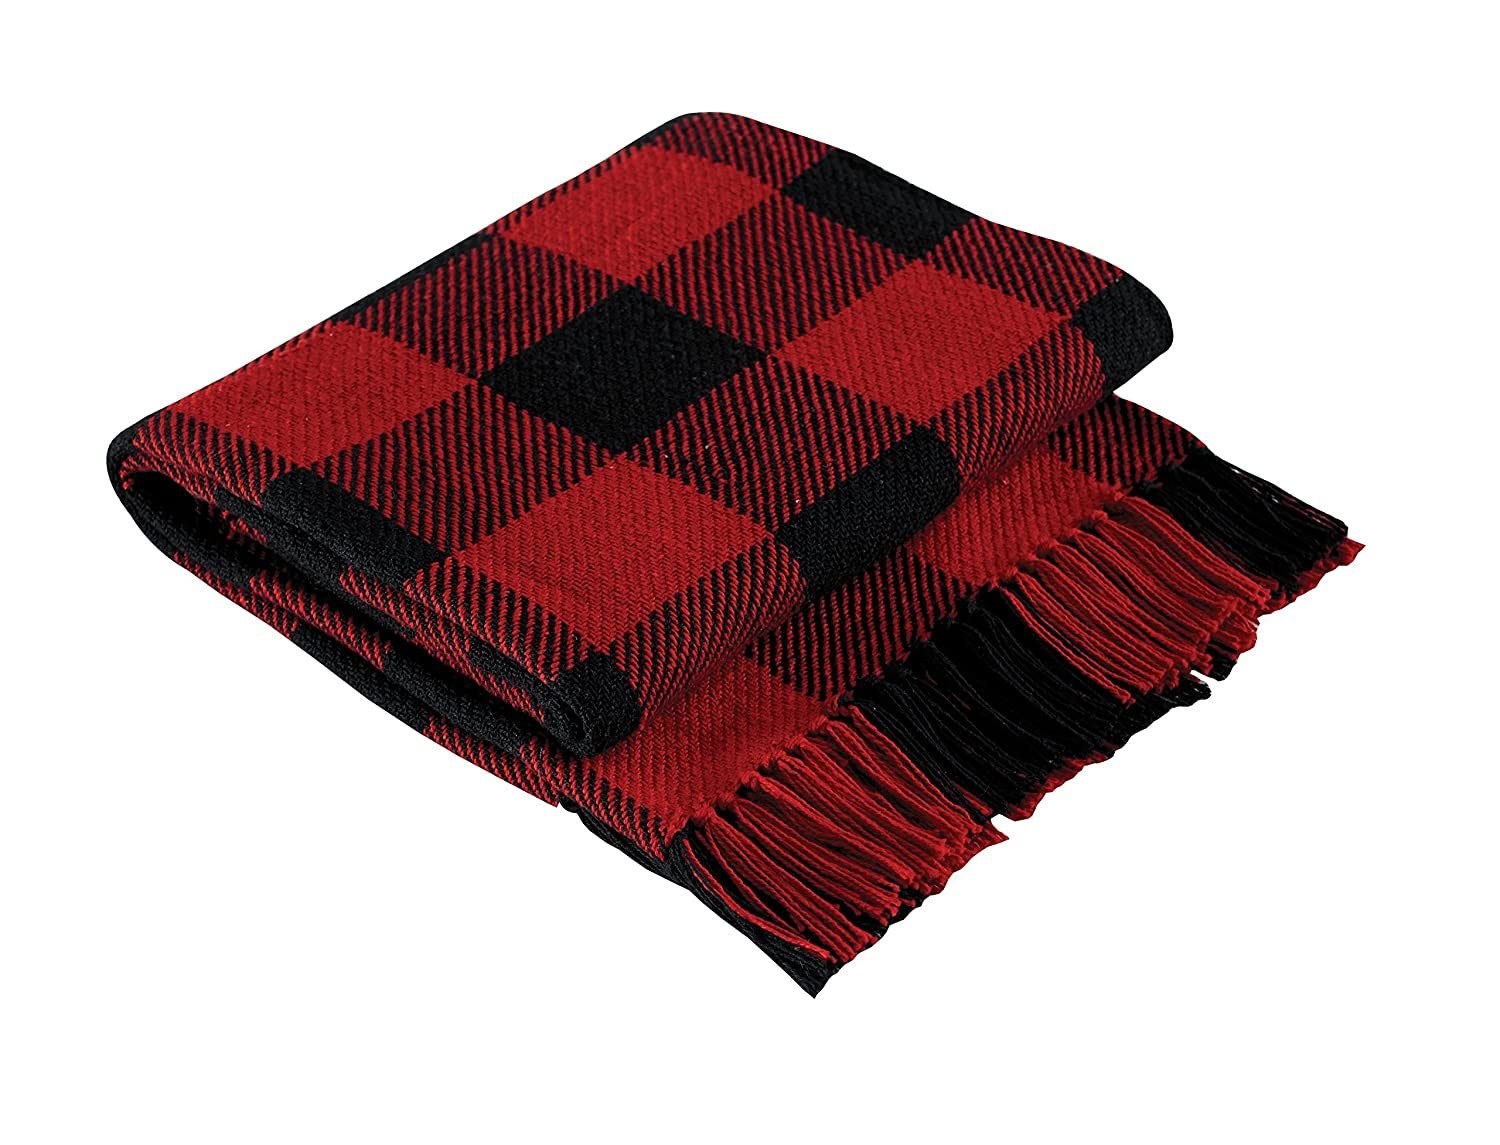 amazoncom park designs buffalo check throw blanket home  kitchen -